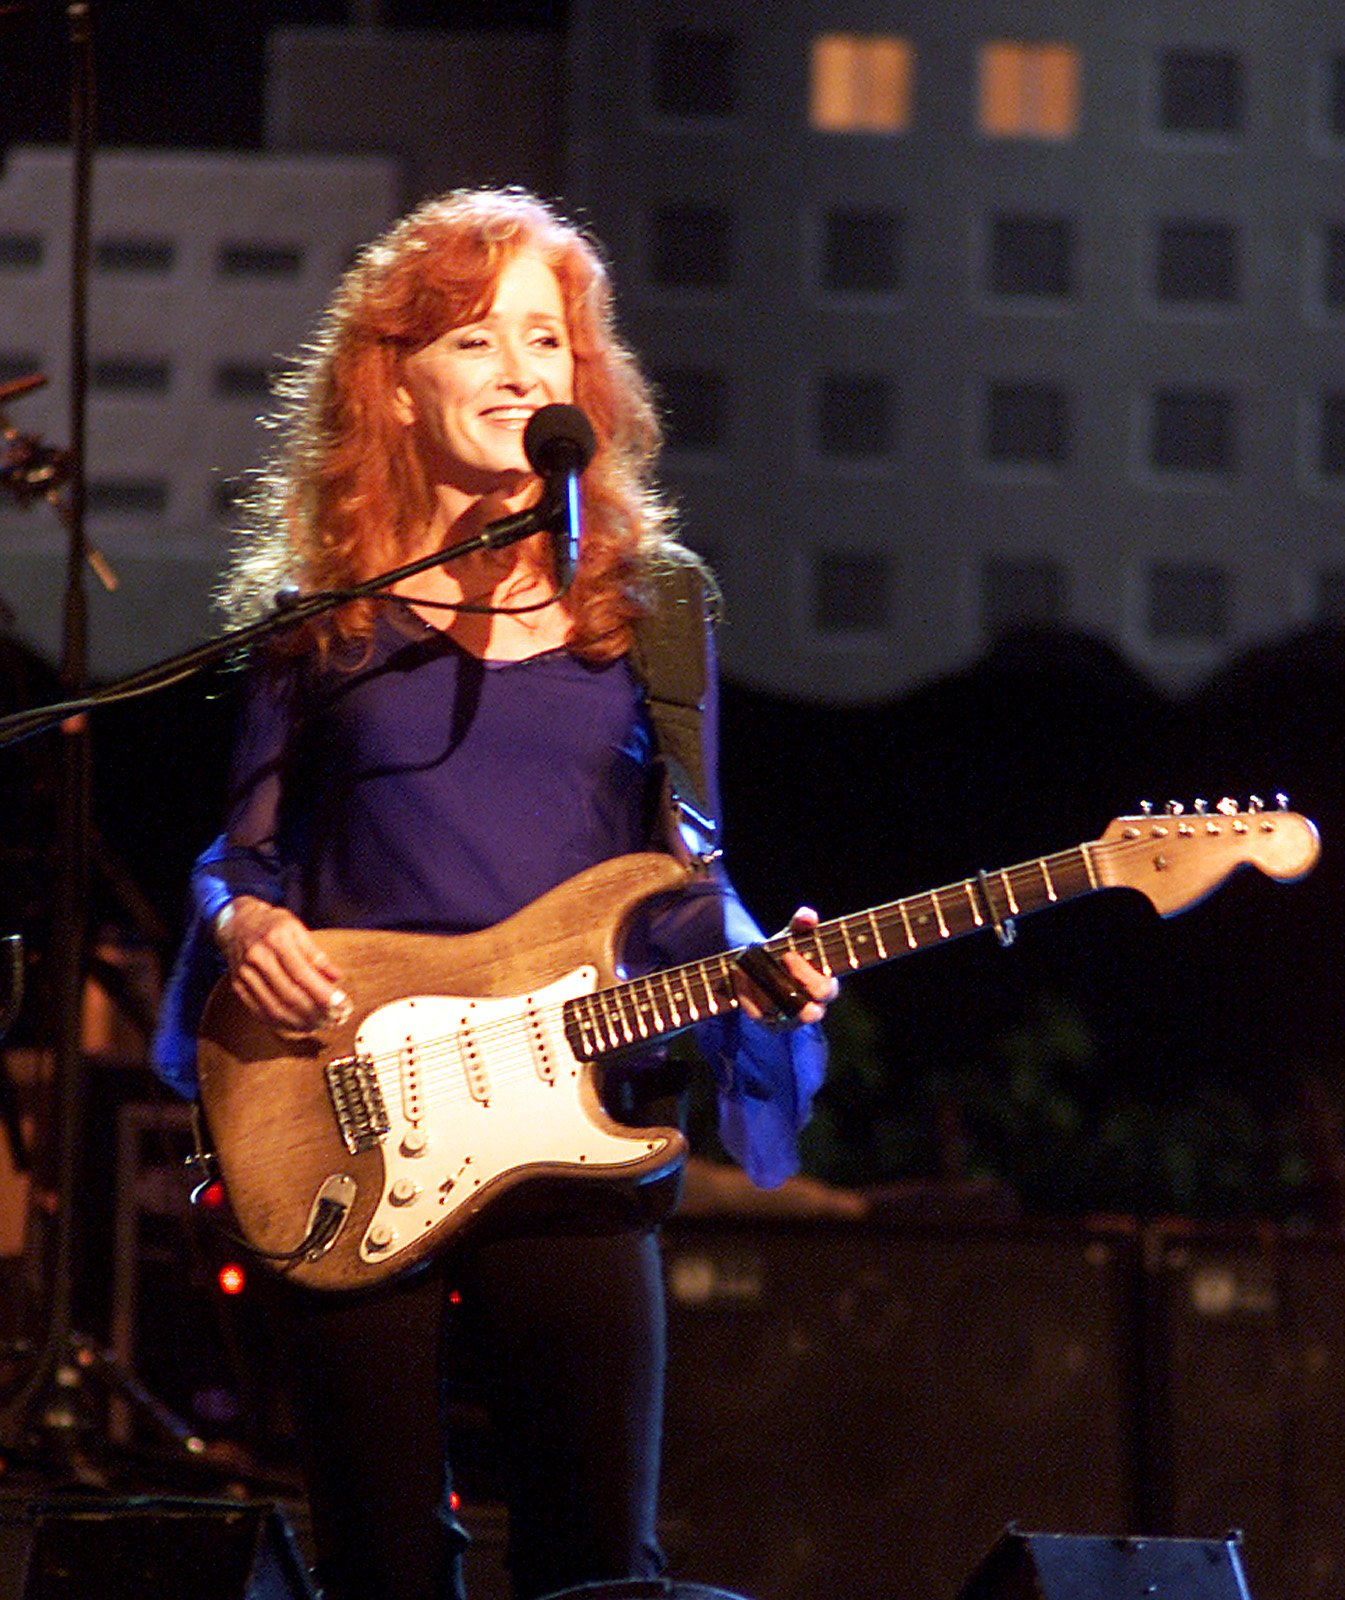 Singer Bonnie Raitt performs at the taping of the Austin City Limits Gala 2002 which was held at the Austin Convention Center. © Larry Kolvoord (AMERICAN-STATESMAN)